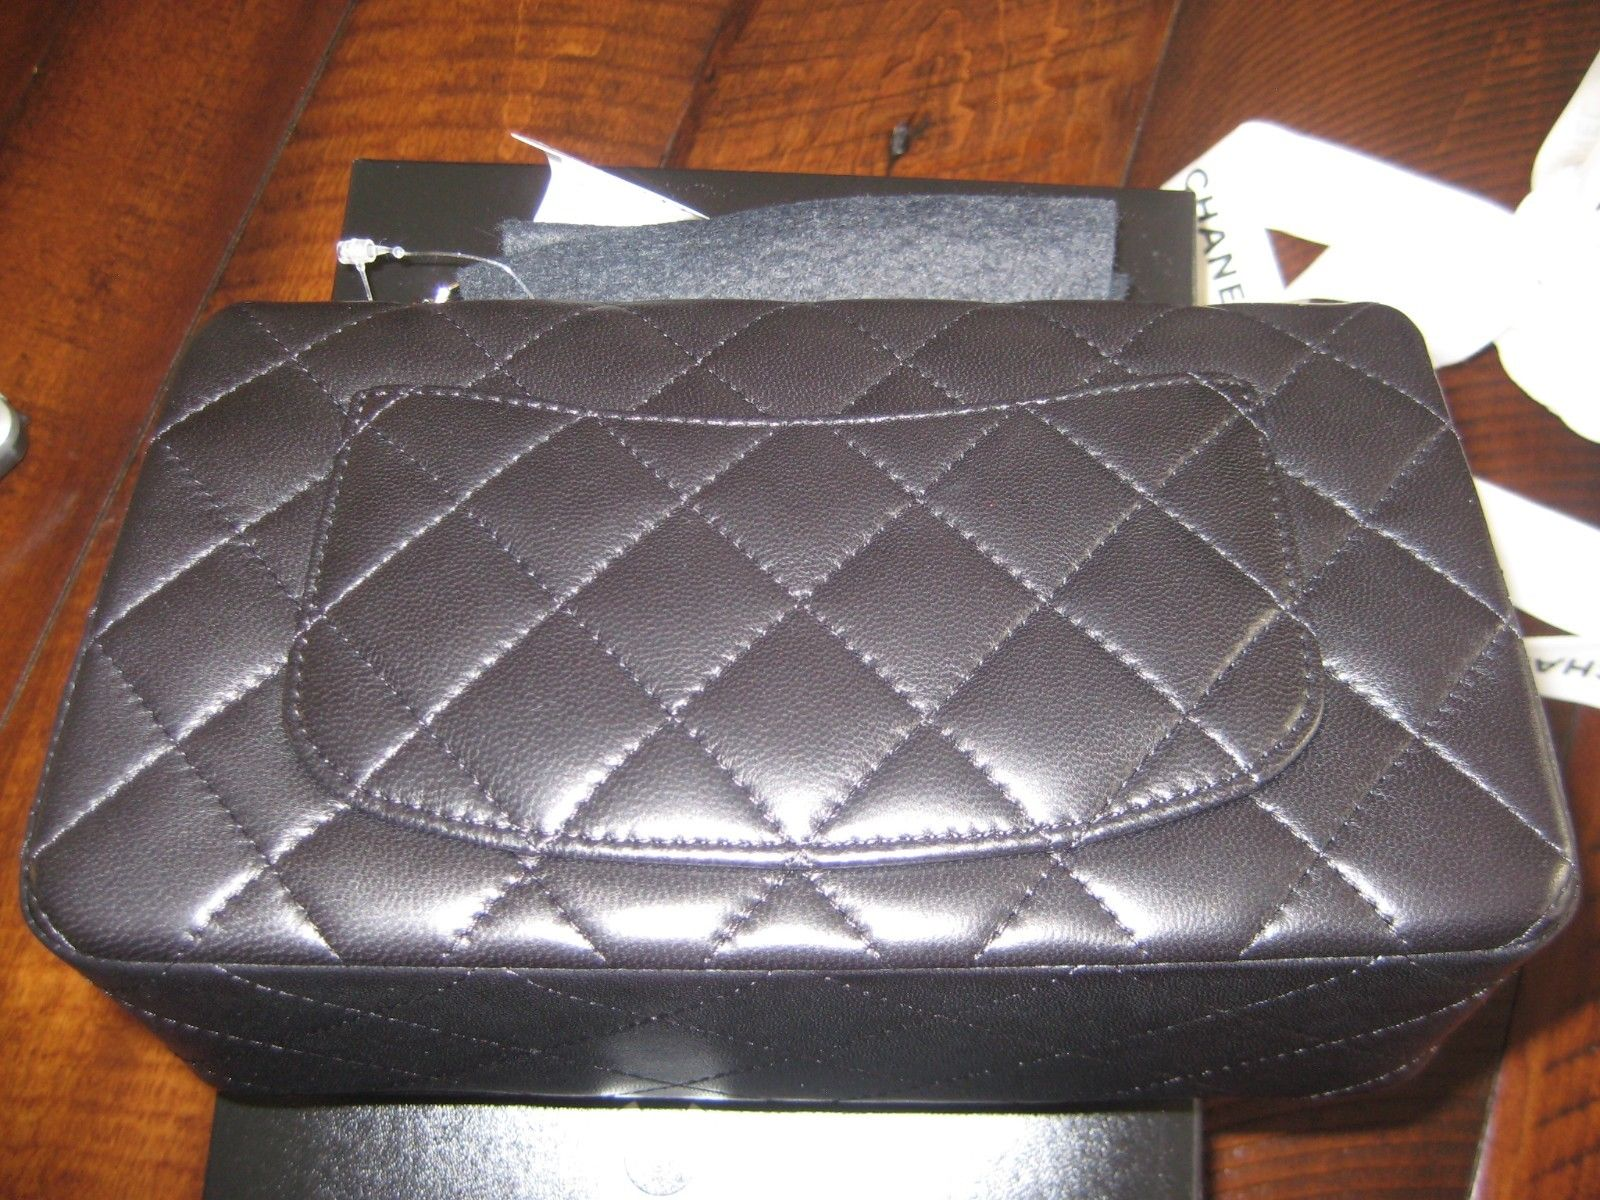 392bde65ac38 buyer scam on chanel purse - The eBay Community